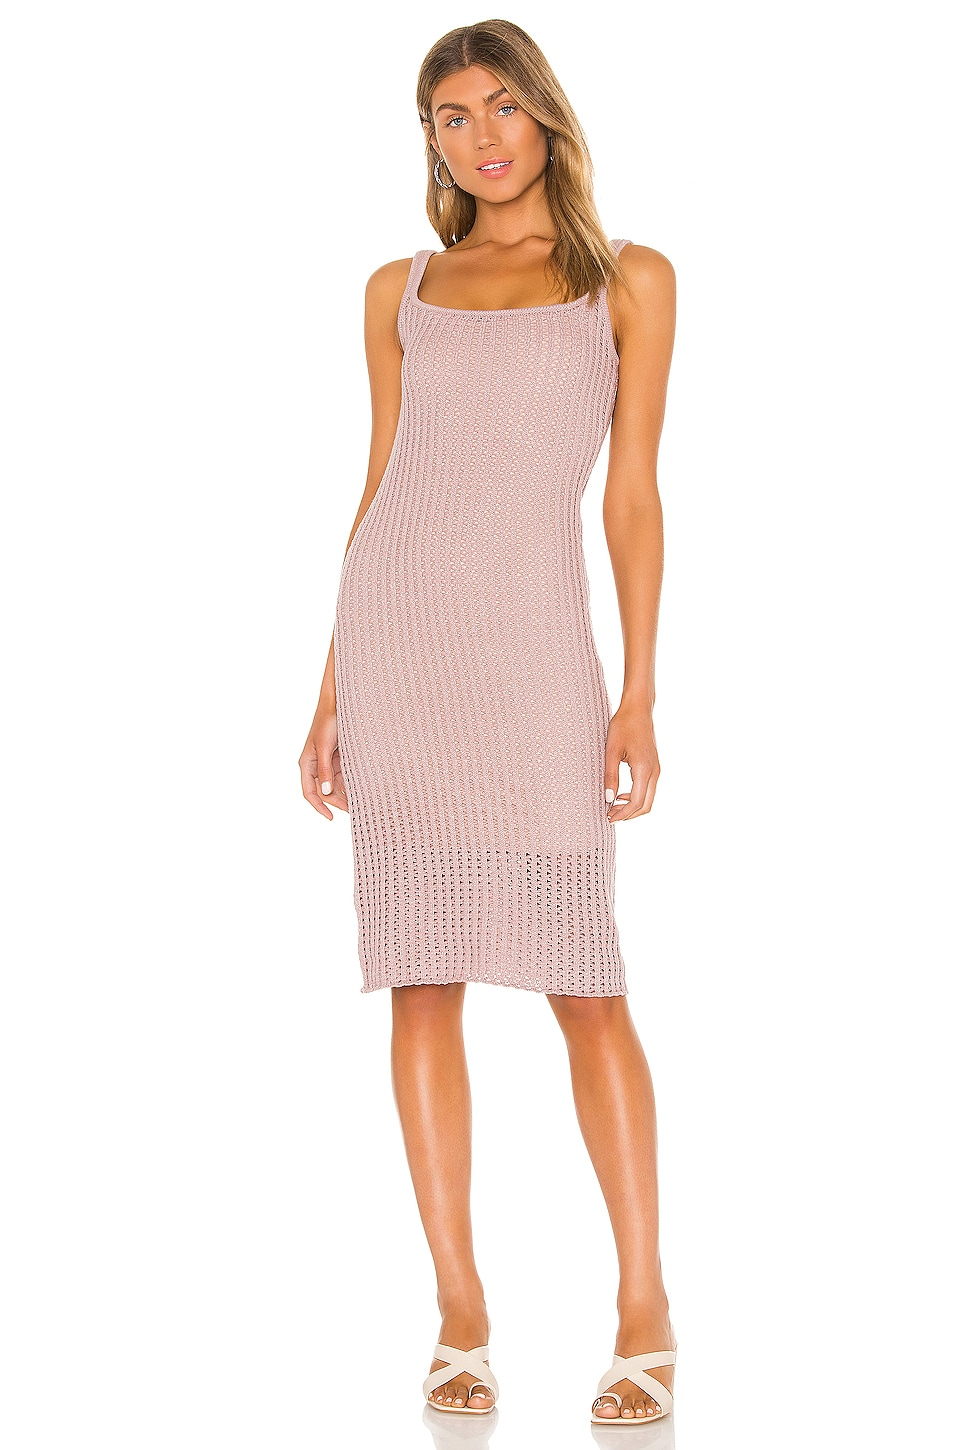 LPA Olenna Dress in Mauve